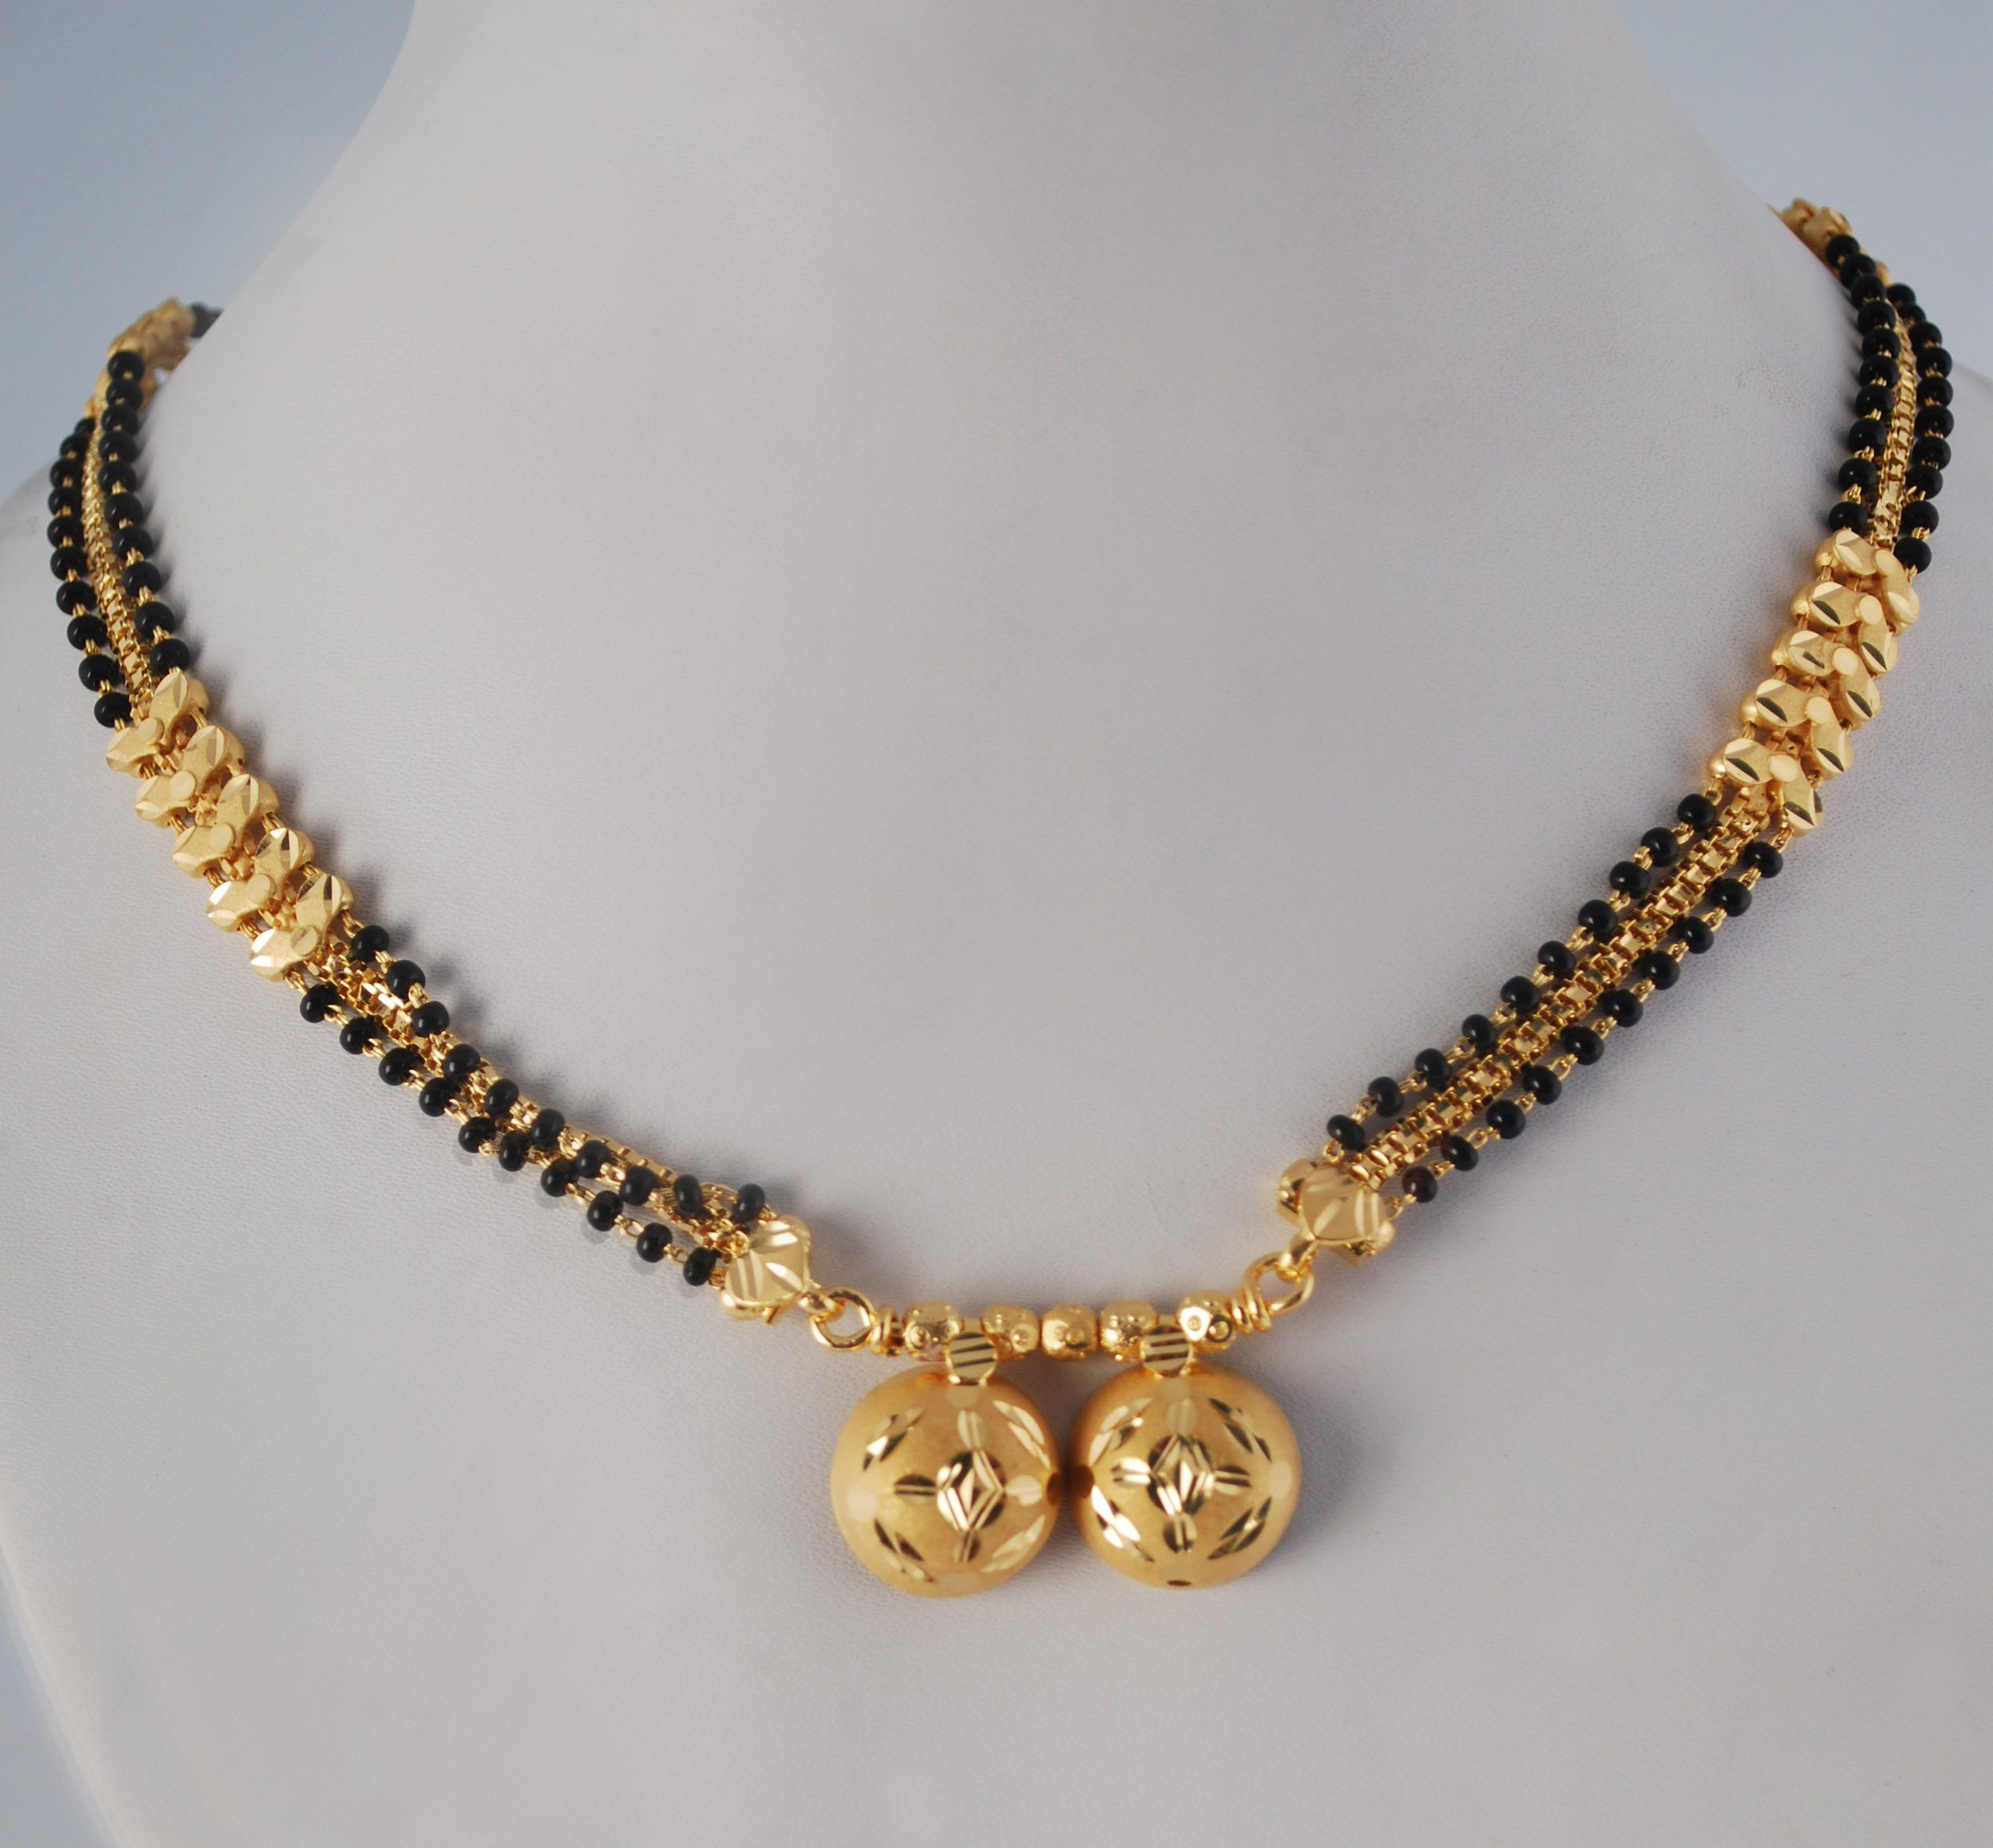 Mangalsutra mangalsutra pinterest search and design